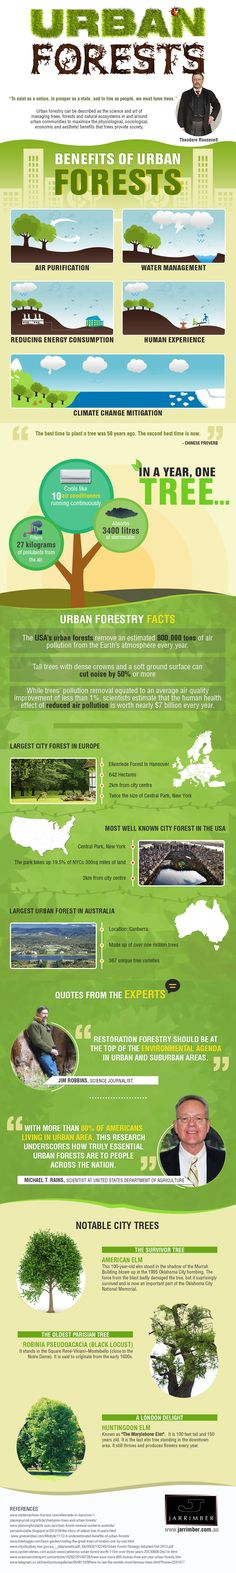 # Week4 The concept shown in this graphic is of the urban forest. It increases quality of life not just through natural beautification but also having functional uses as well as having environmental benefits.